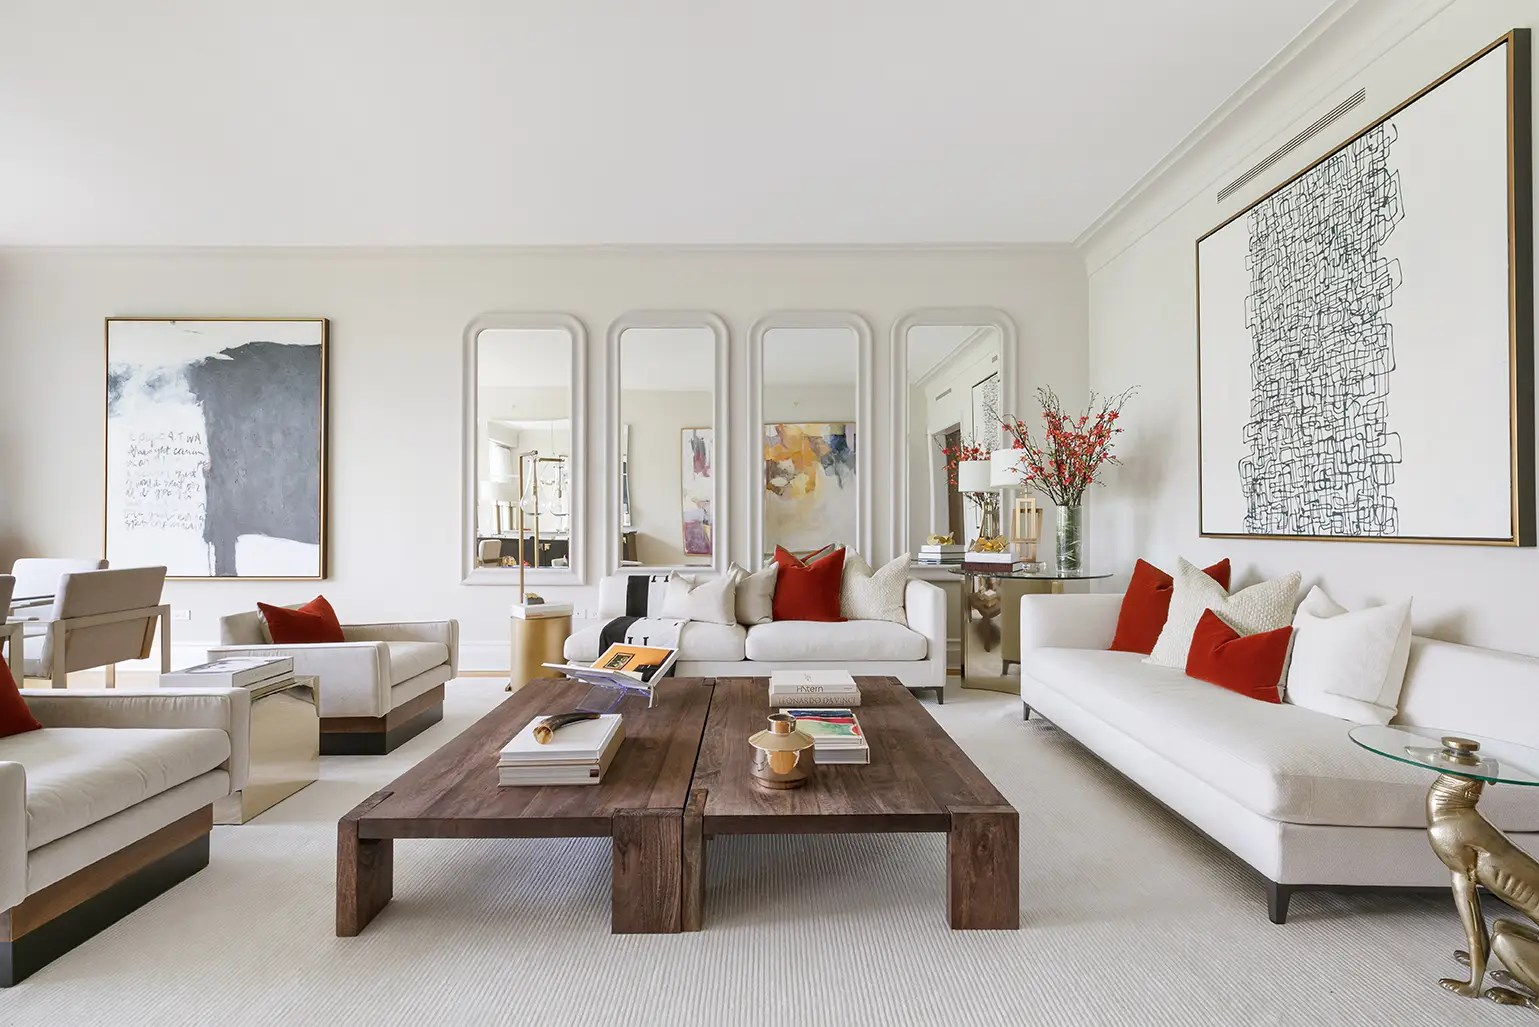 Celebrity Home Decorating How To Decorate On A Budget Business Insider